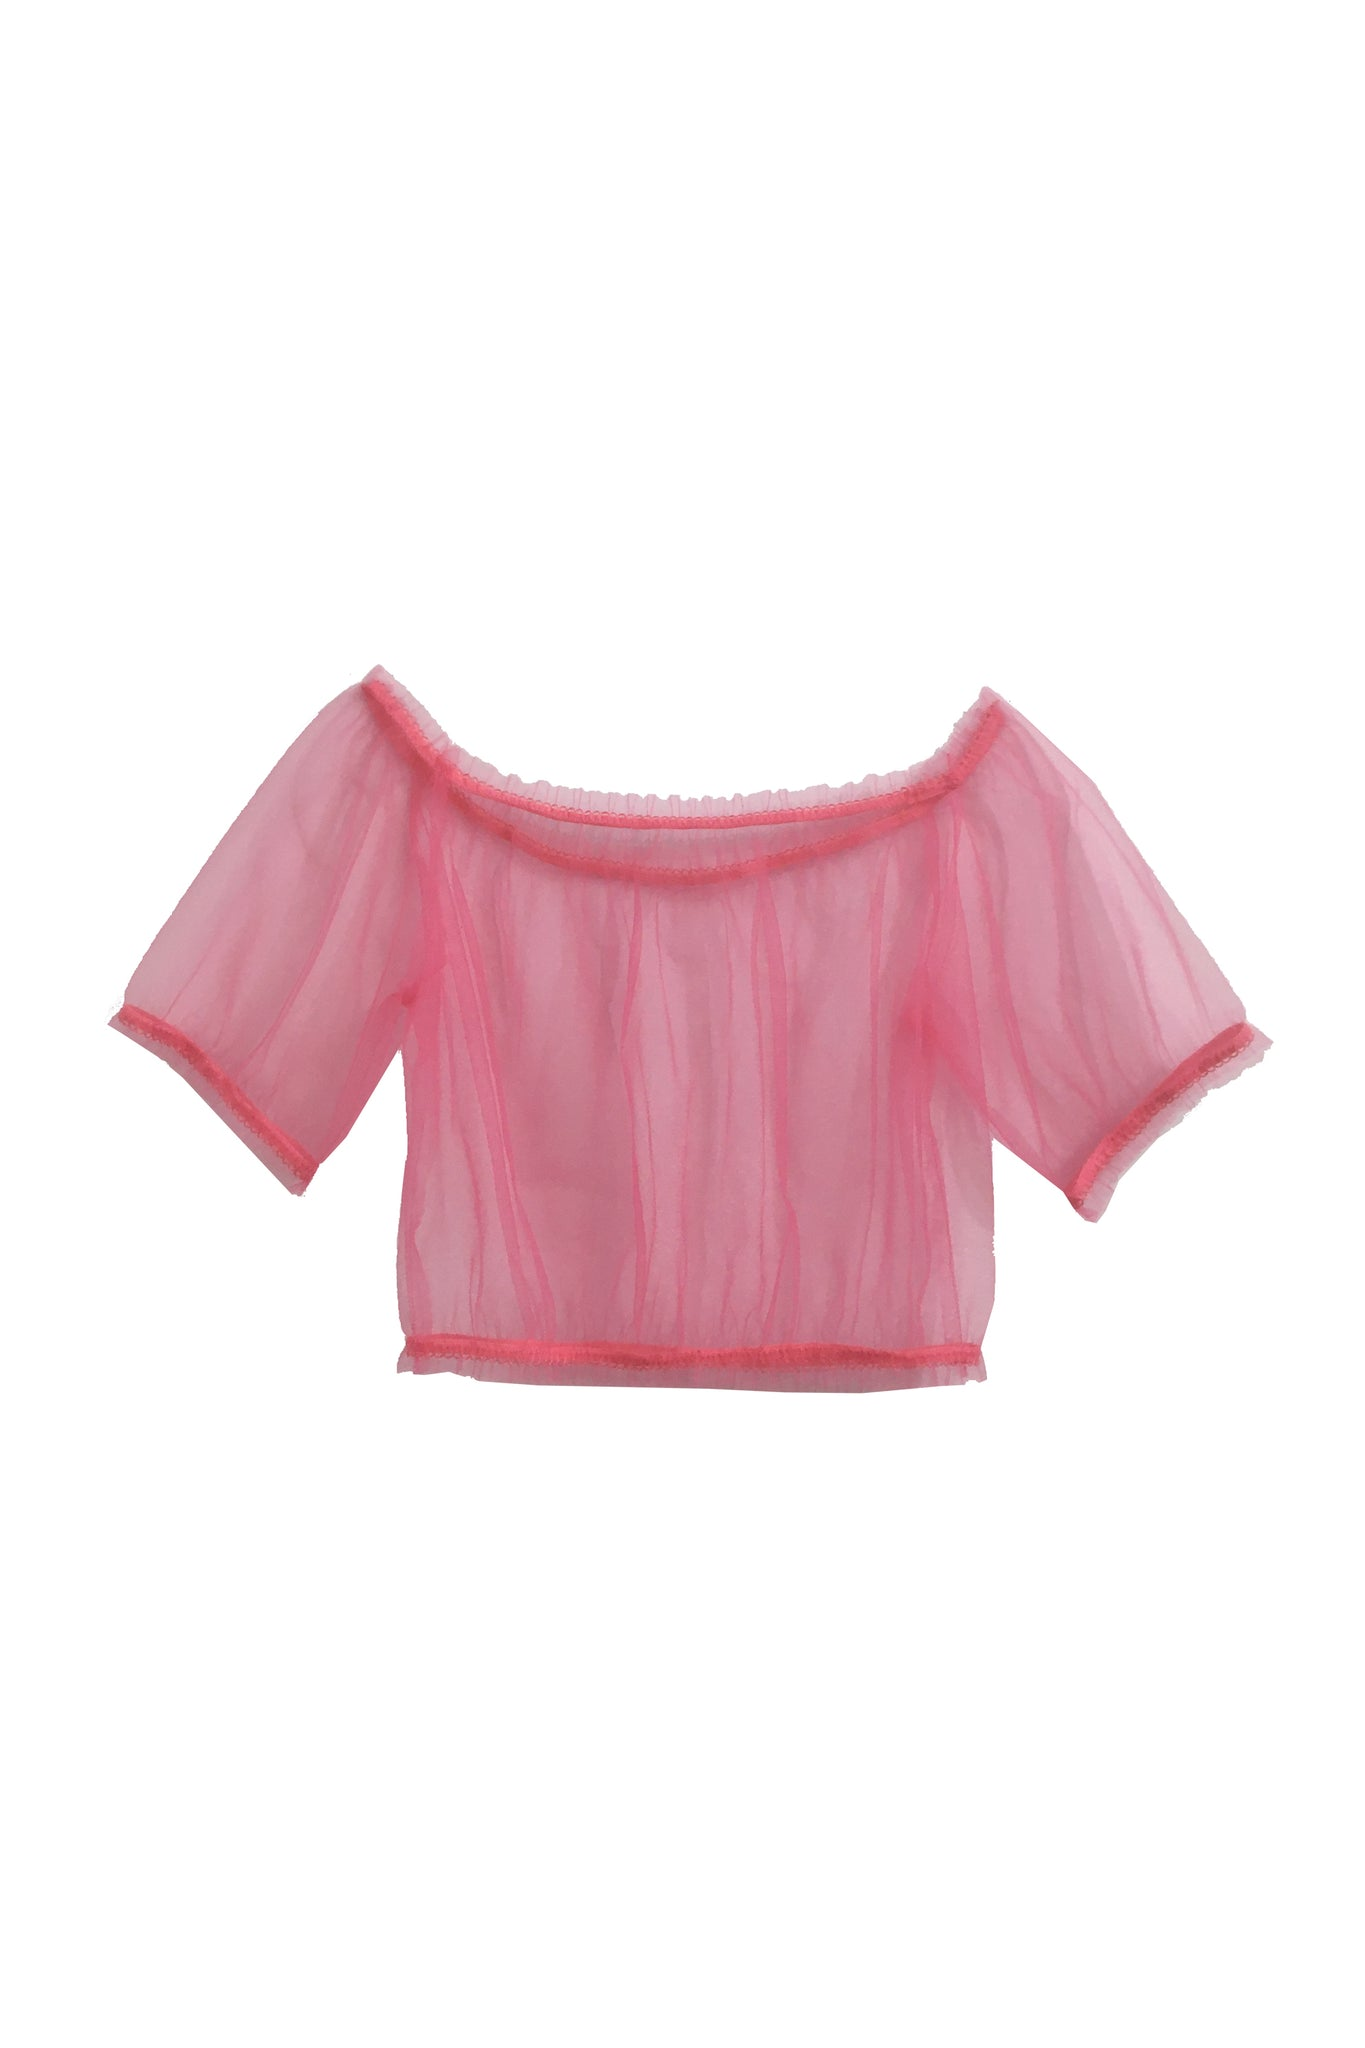 Fern frilly crop top